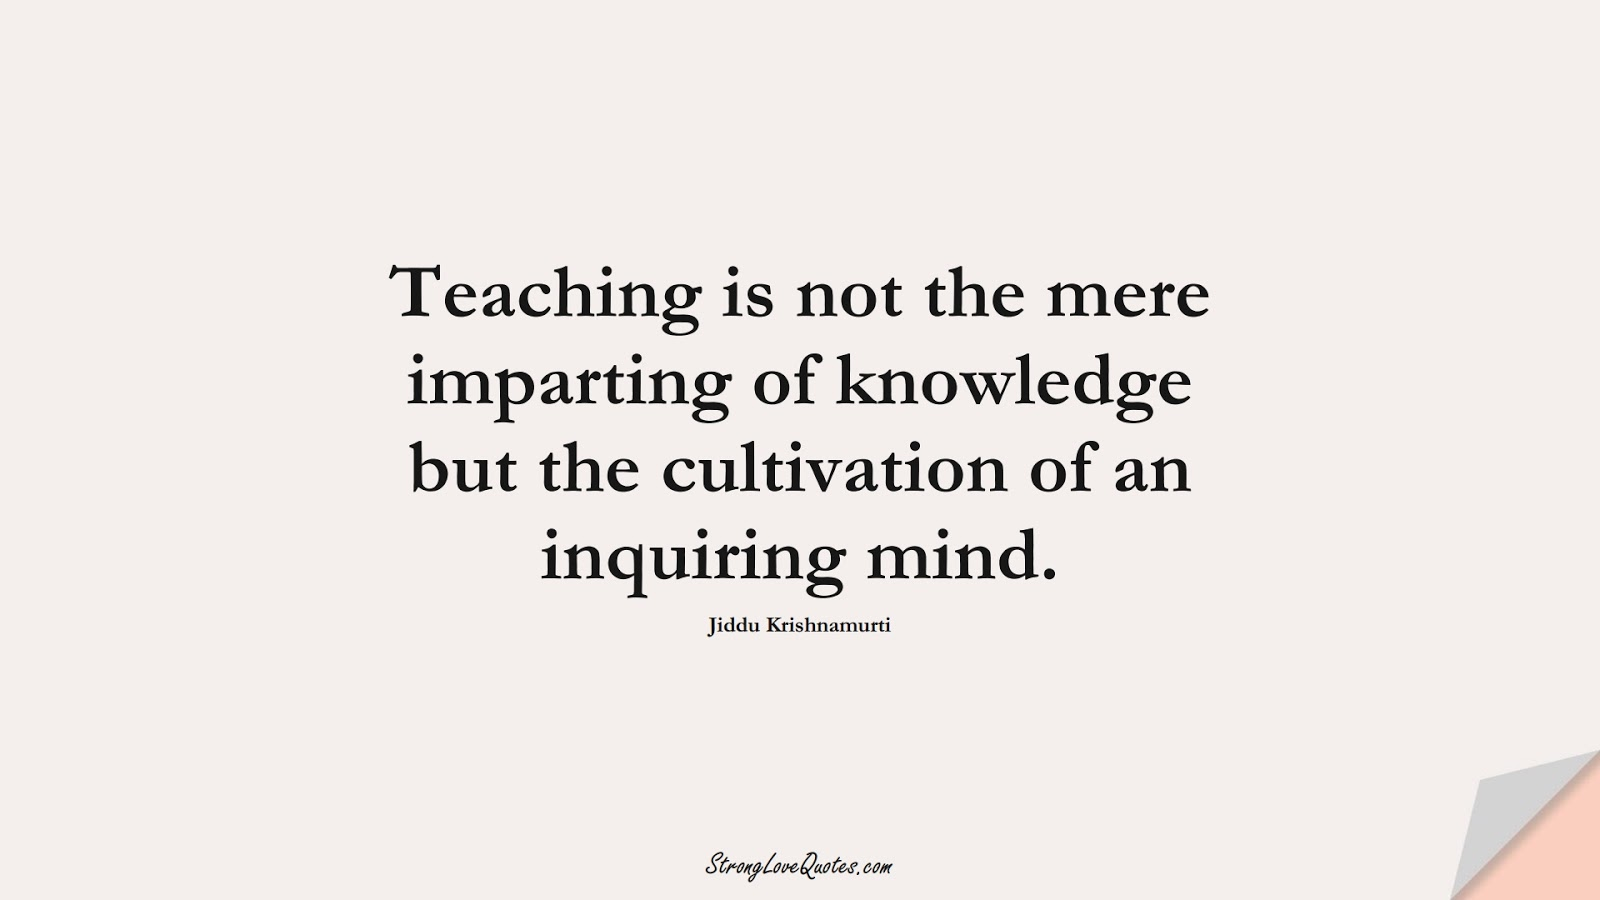 Teaching is not the mere imparting of knowledge but the cultivation of an inquiring mind. (Jiddu Krishnamurti);  #KnowledgeQuotes